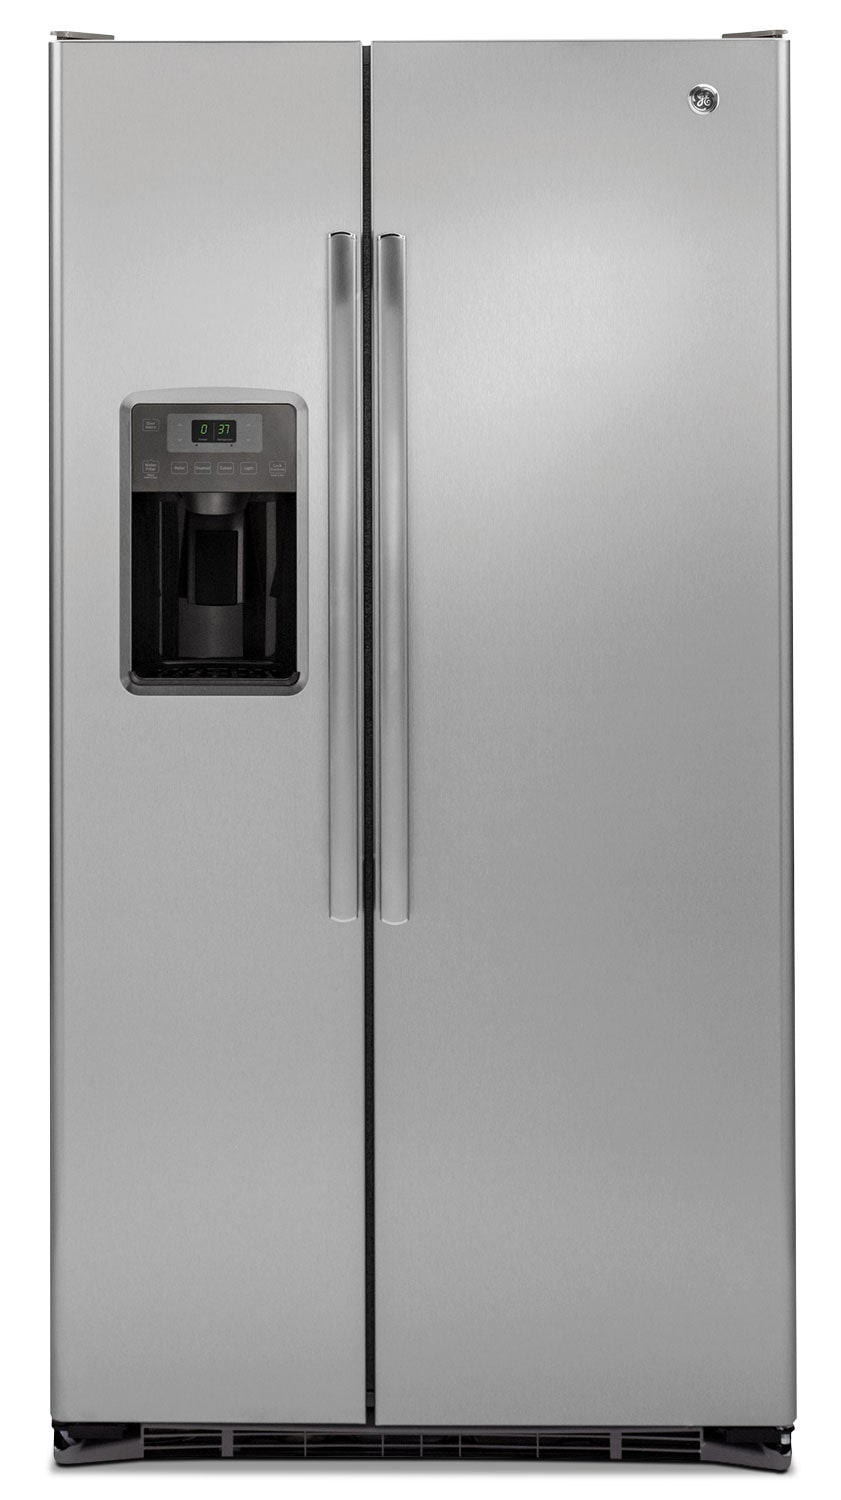 GE 21.9 Cu. Ft. Counter-Depth Side-by-Side Refrigerator – GZS22DSJSS